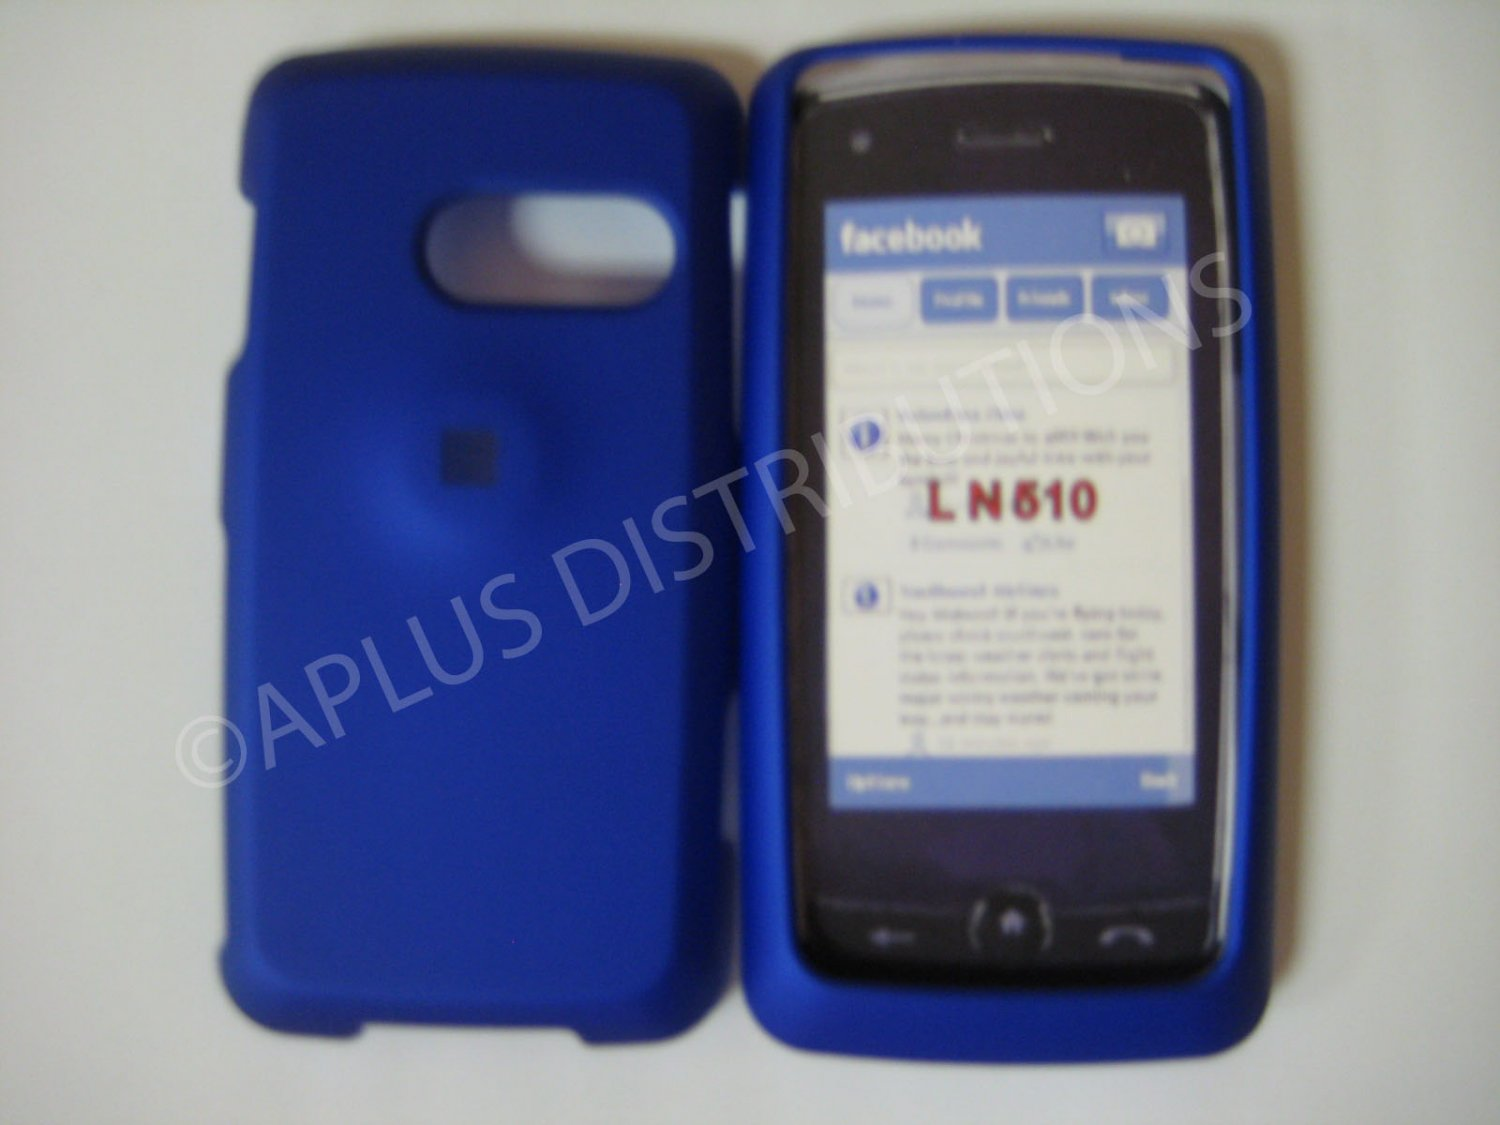 New Blue Rubberized Hard Protective Cover For LG Rumor Touch LN510 - (0053)